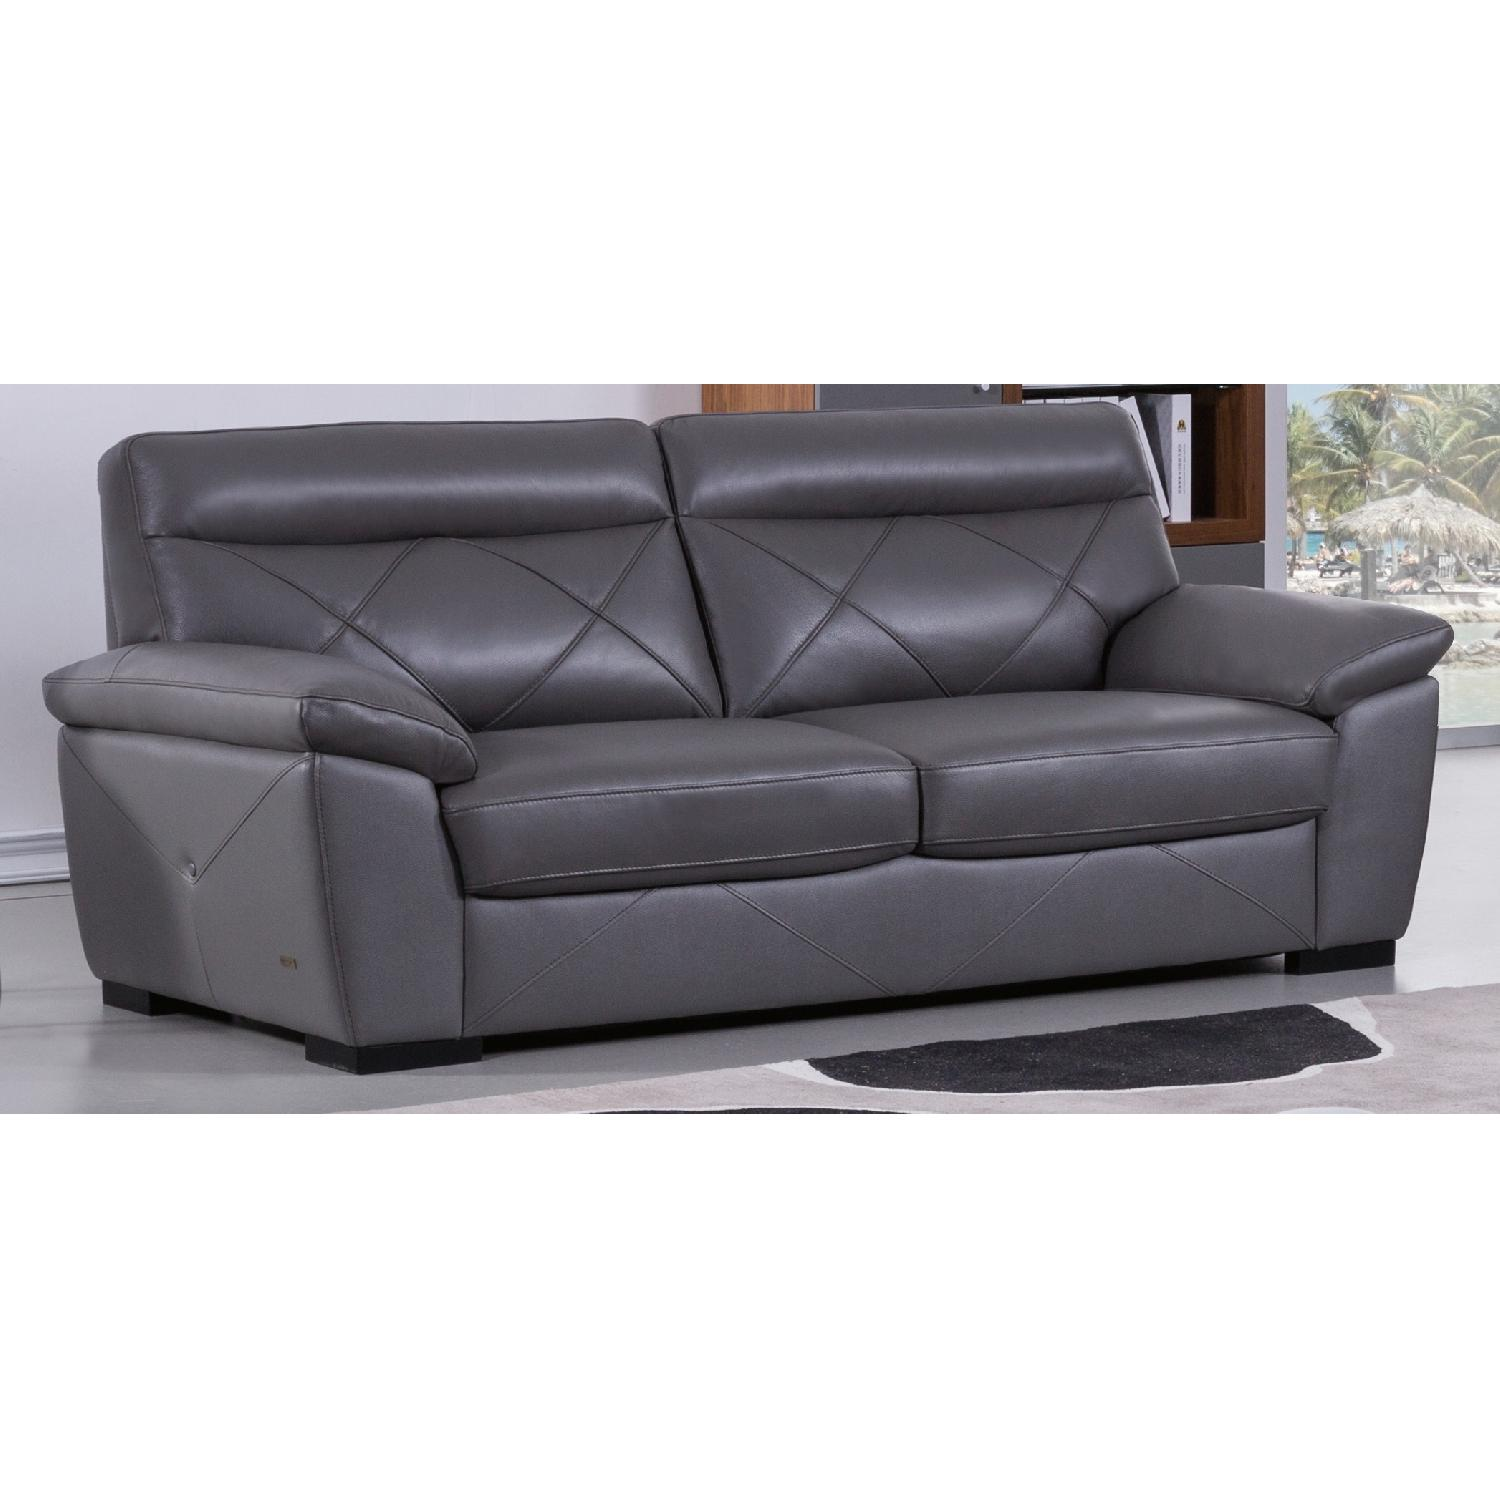 Modern Style Sofa in Dark Grey Top Grain Leather w/ Matching Faux Leather  Padded Headrests & Tufted Button Sides